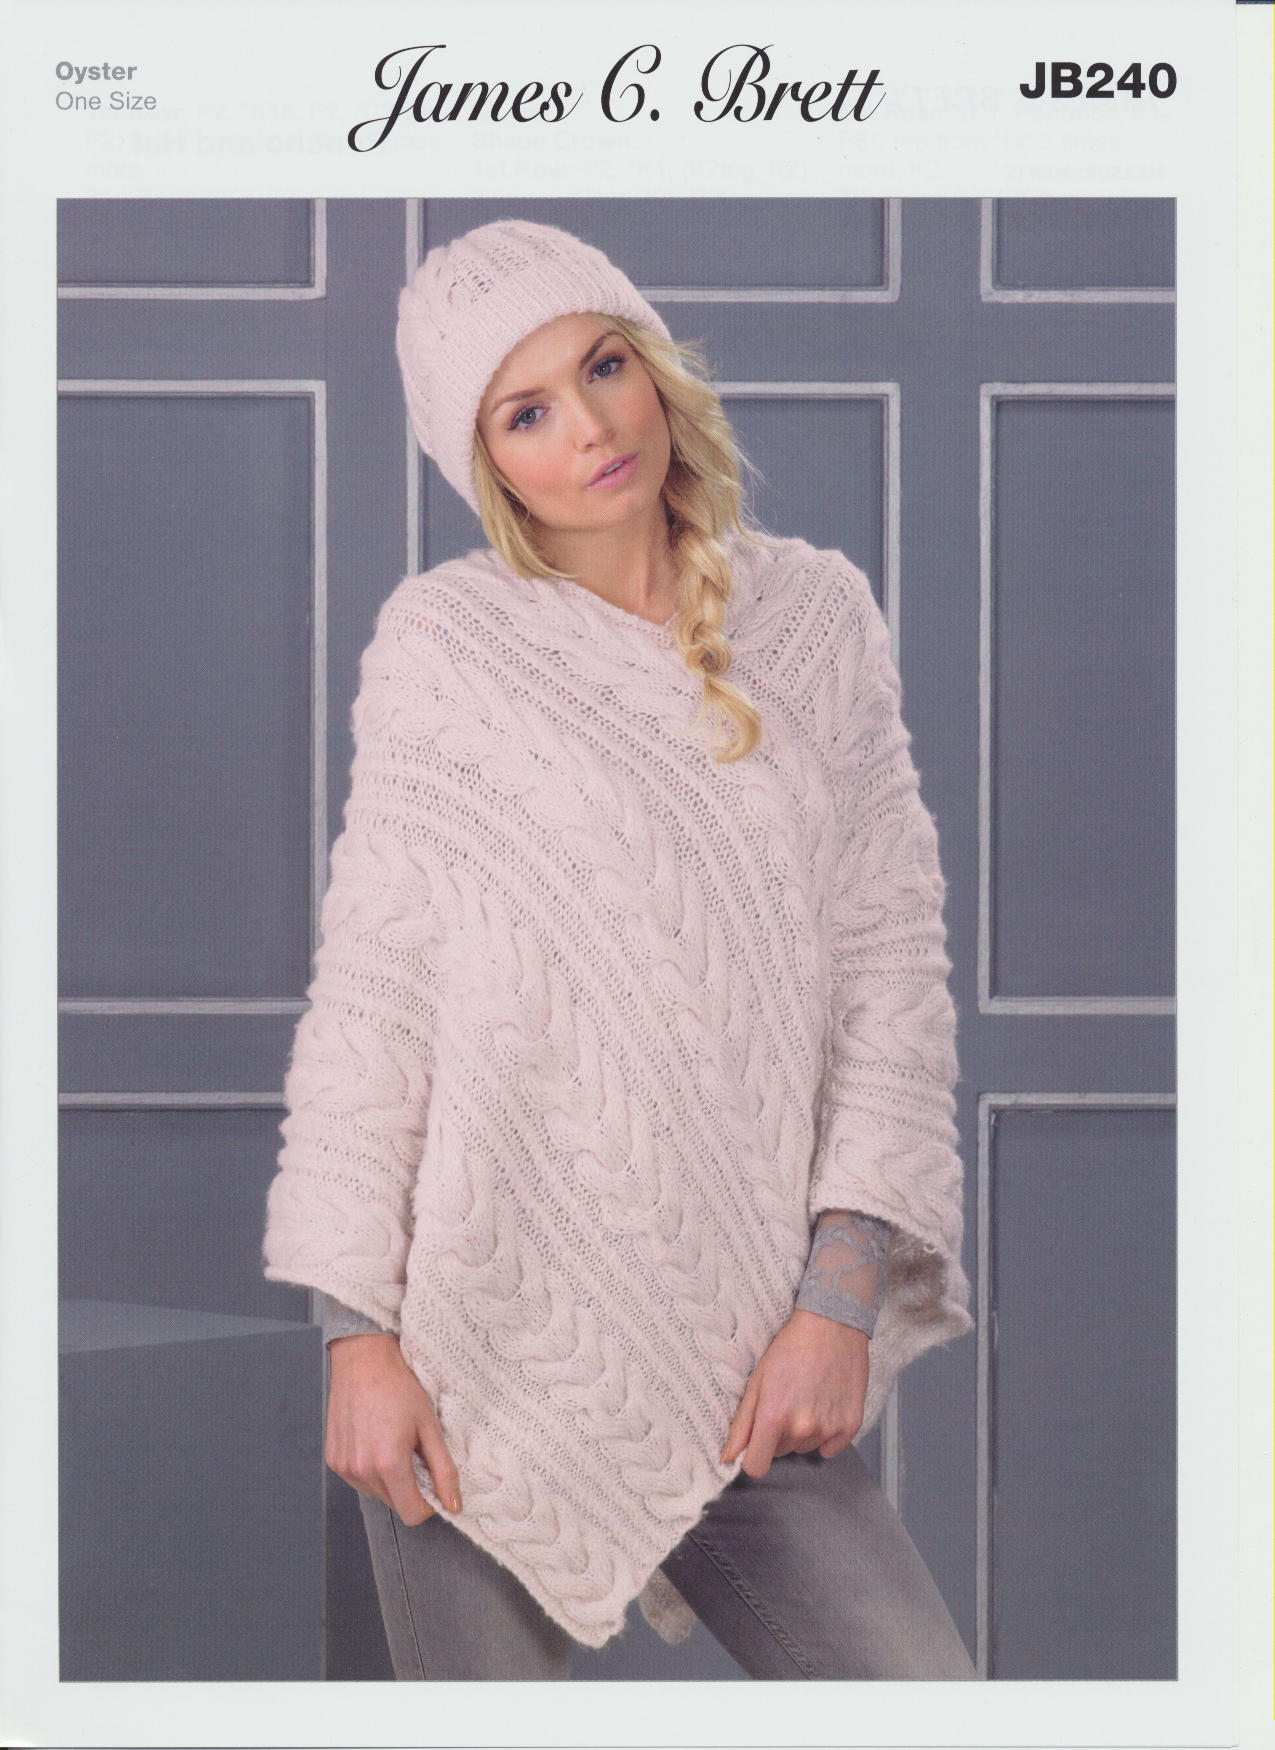 Oyster Aran Knitting Pattern Womens Cable Knit Poncho And Hat JB240 eBay